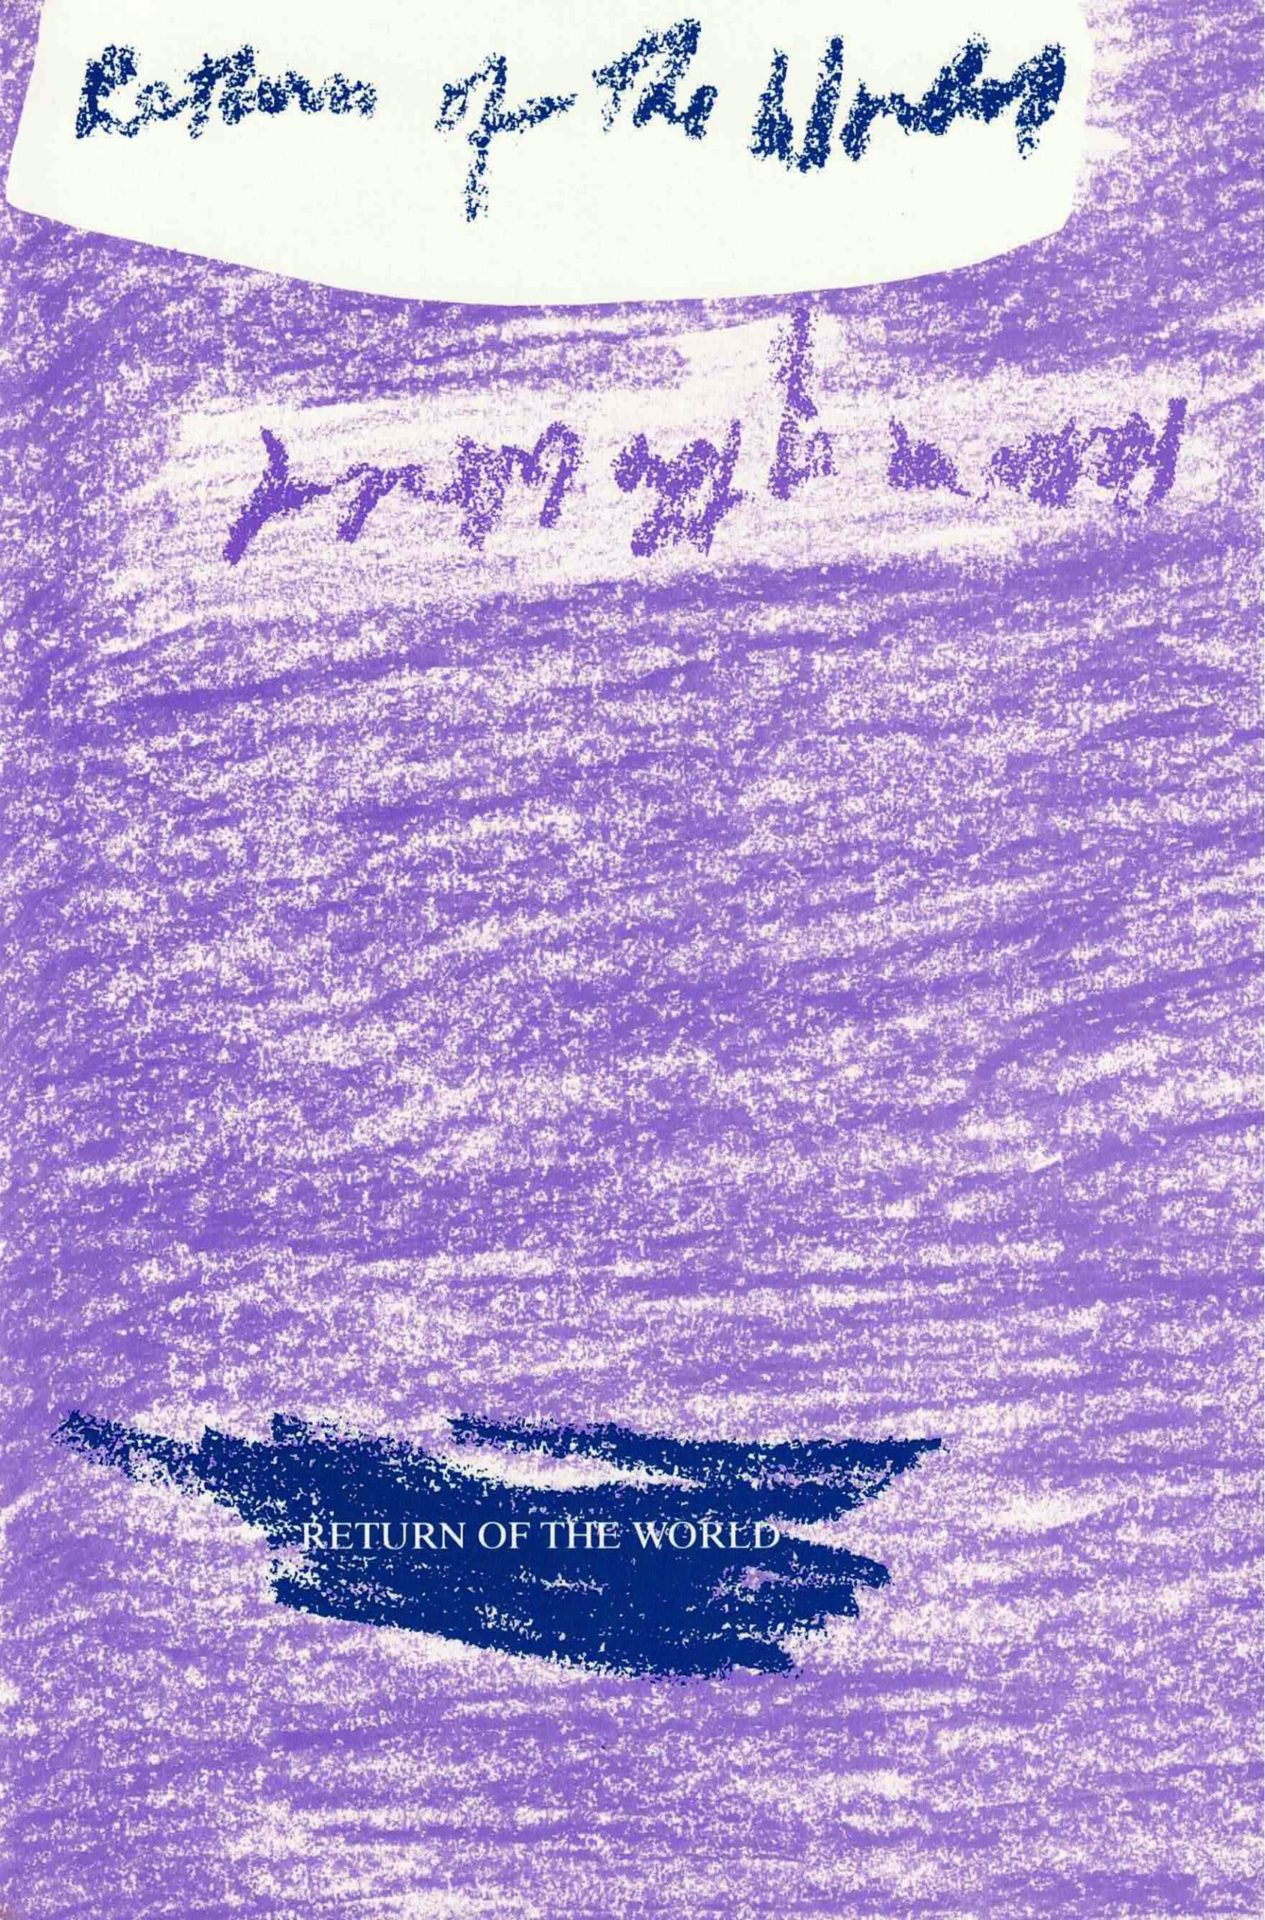 cover of Return of the World by Todd Baron, crayon textured light purple background with crayon-textured handwritten book title and author name